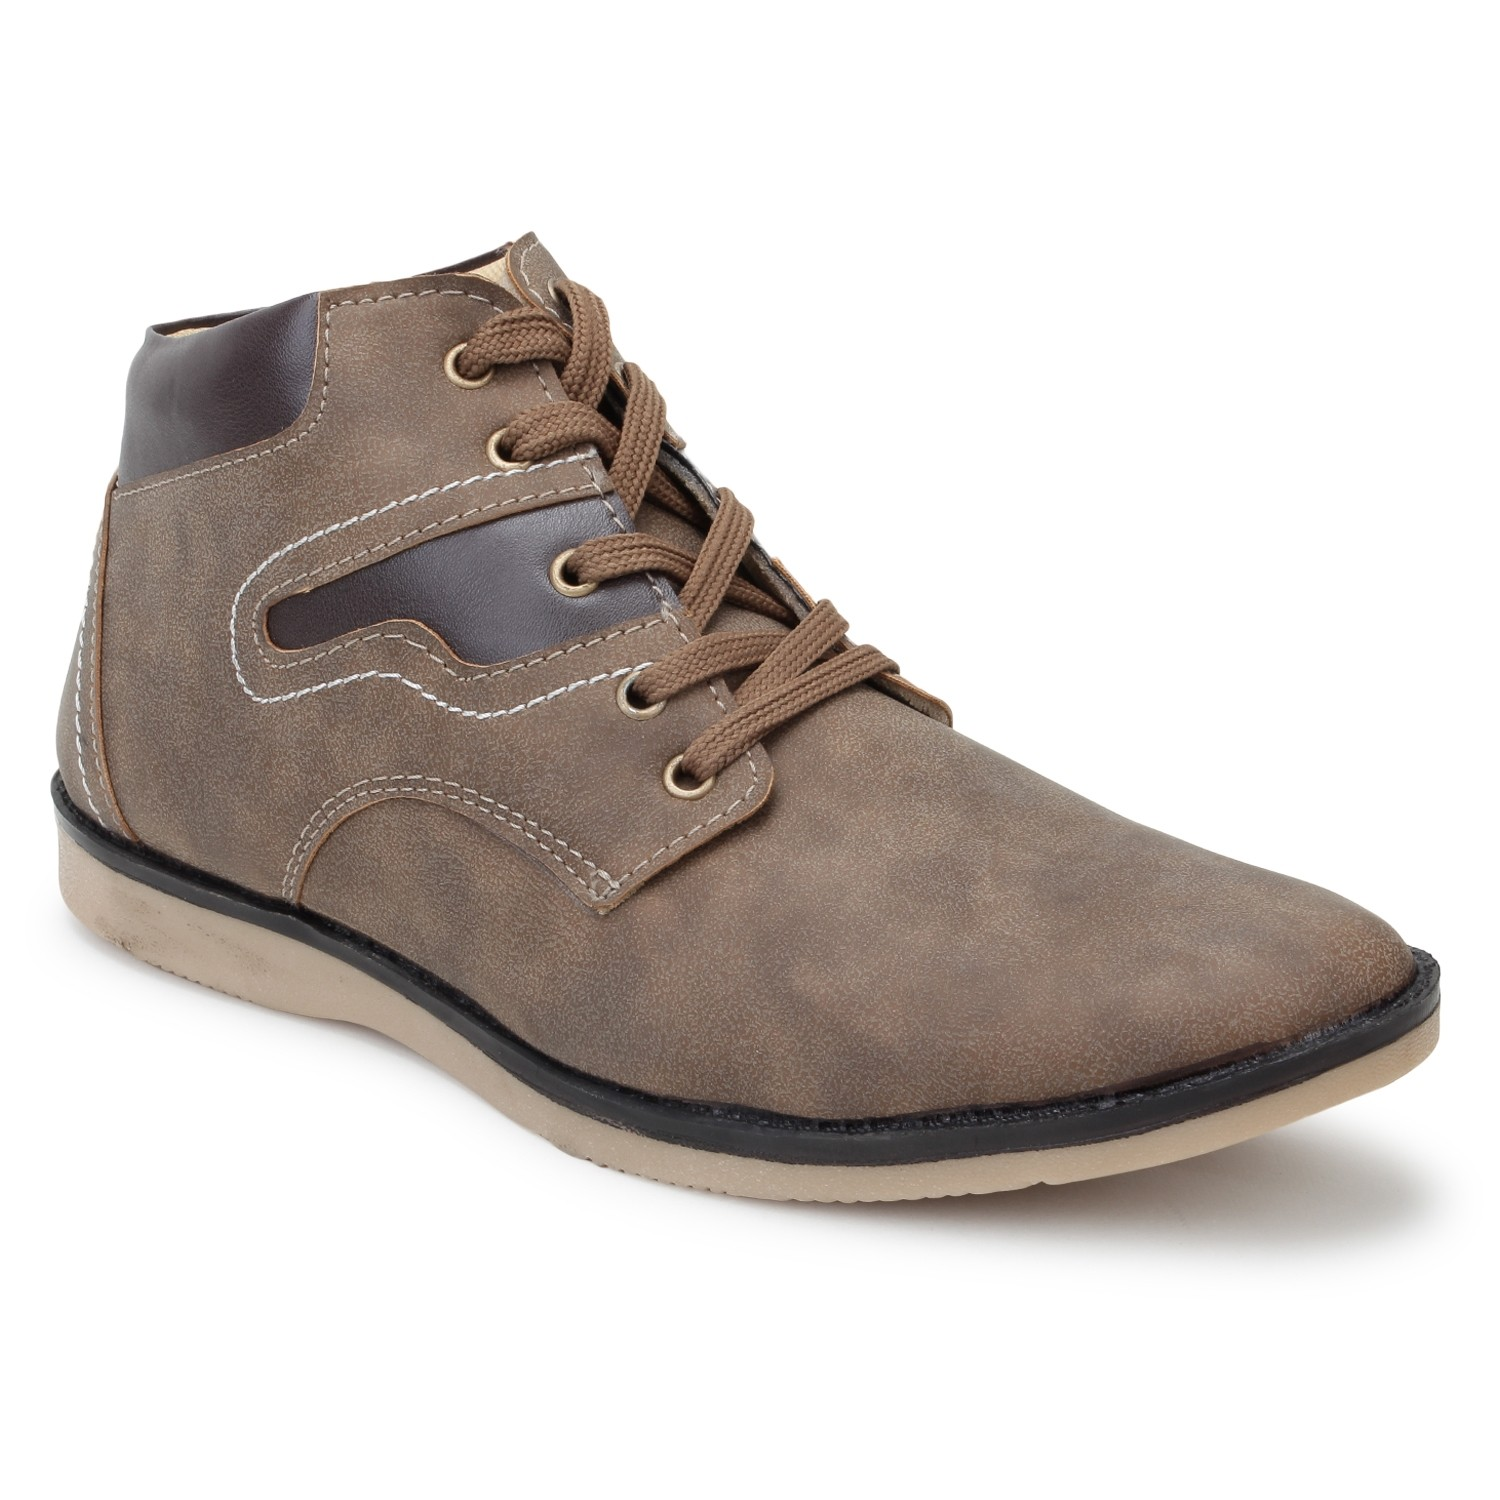 Leatherite Shoes Chickoo